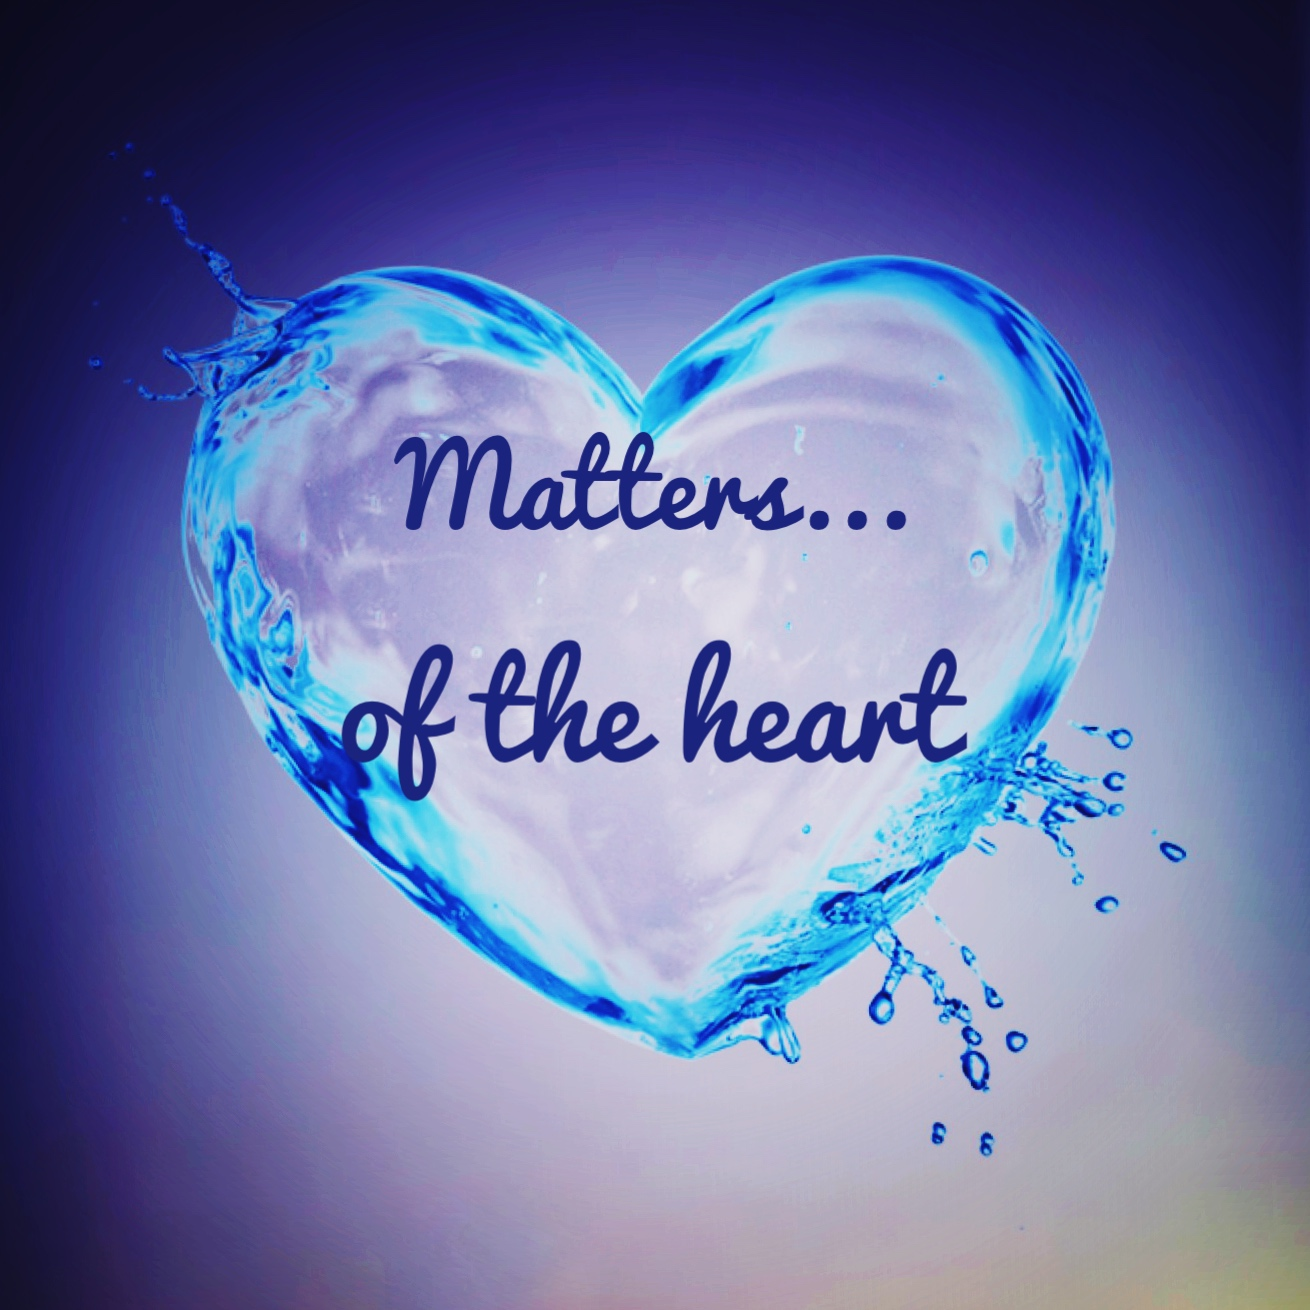 Matters for the heart